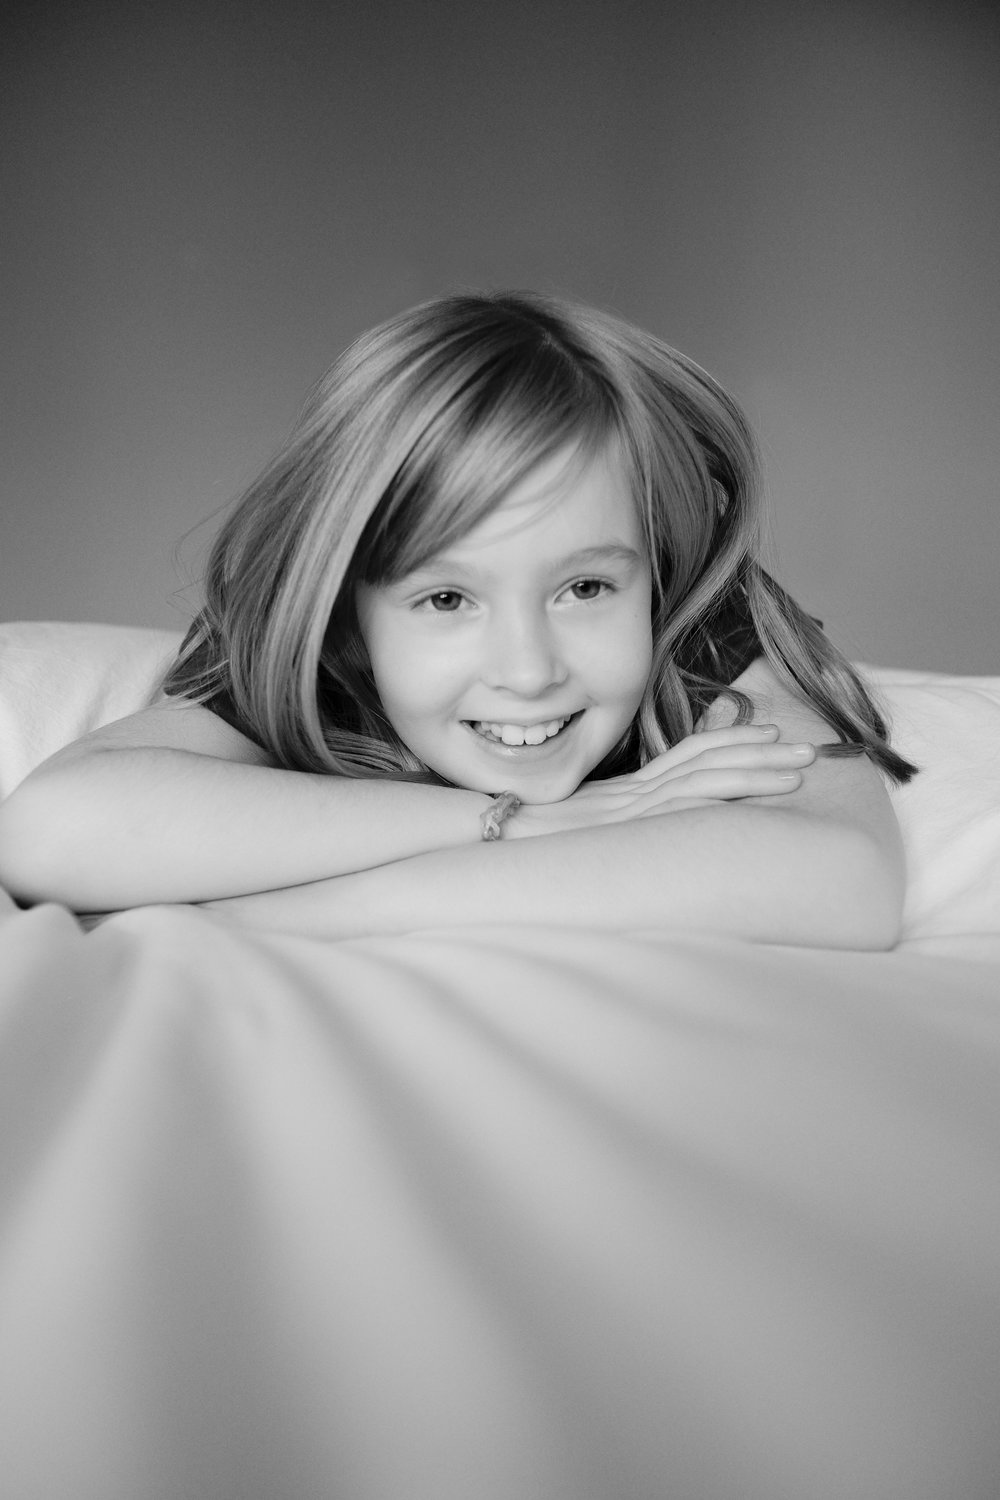 Marta-Hewson-Lifestyle-portrait-young-girl-smiling-on-bed.jpg